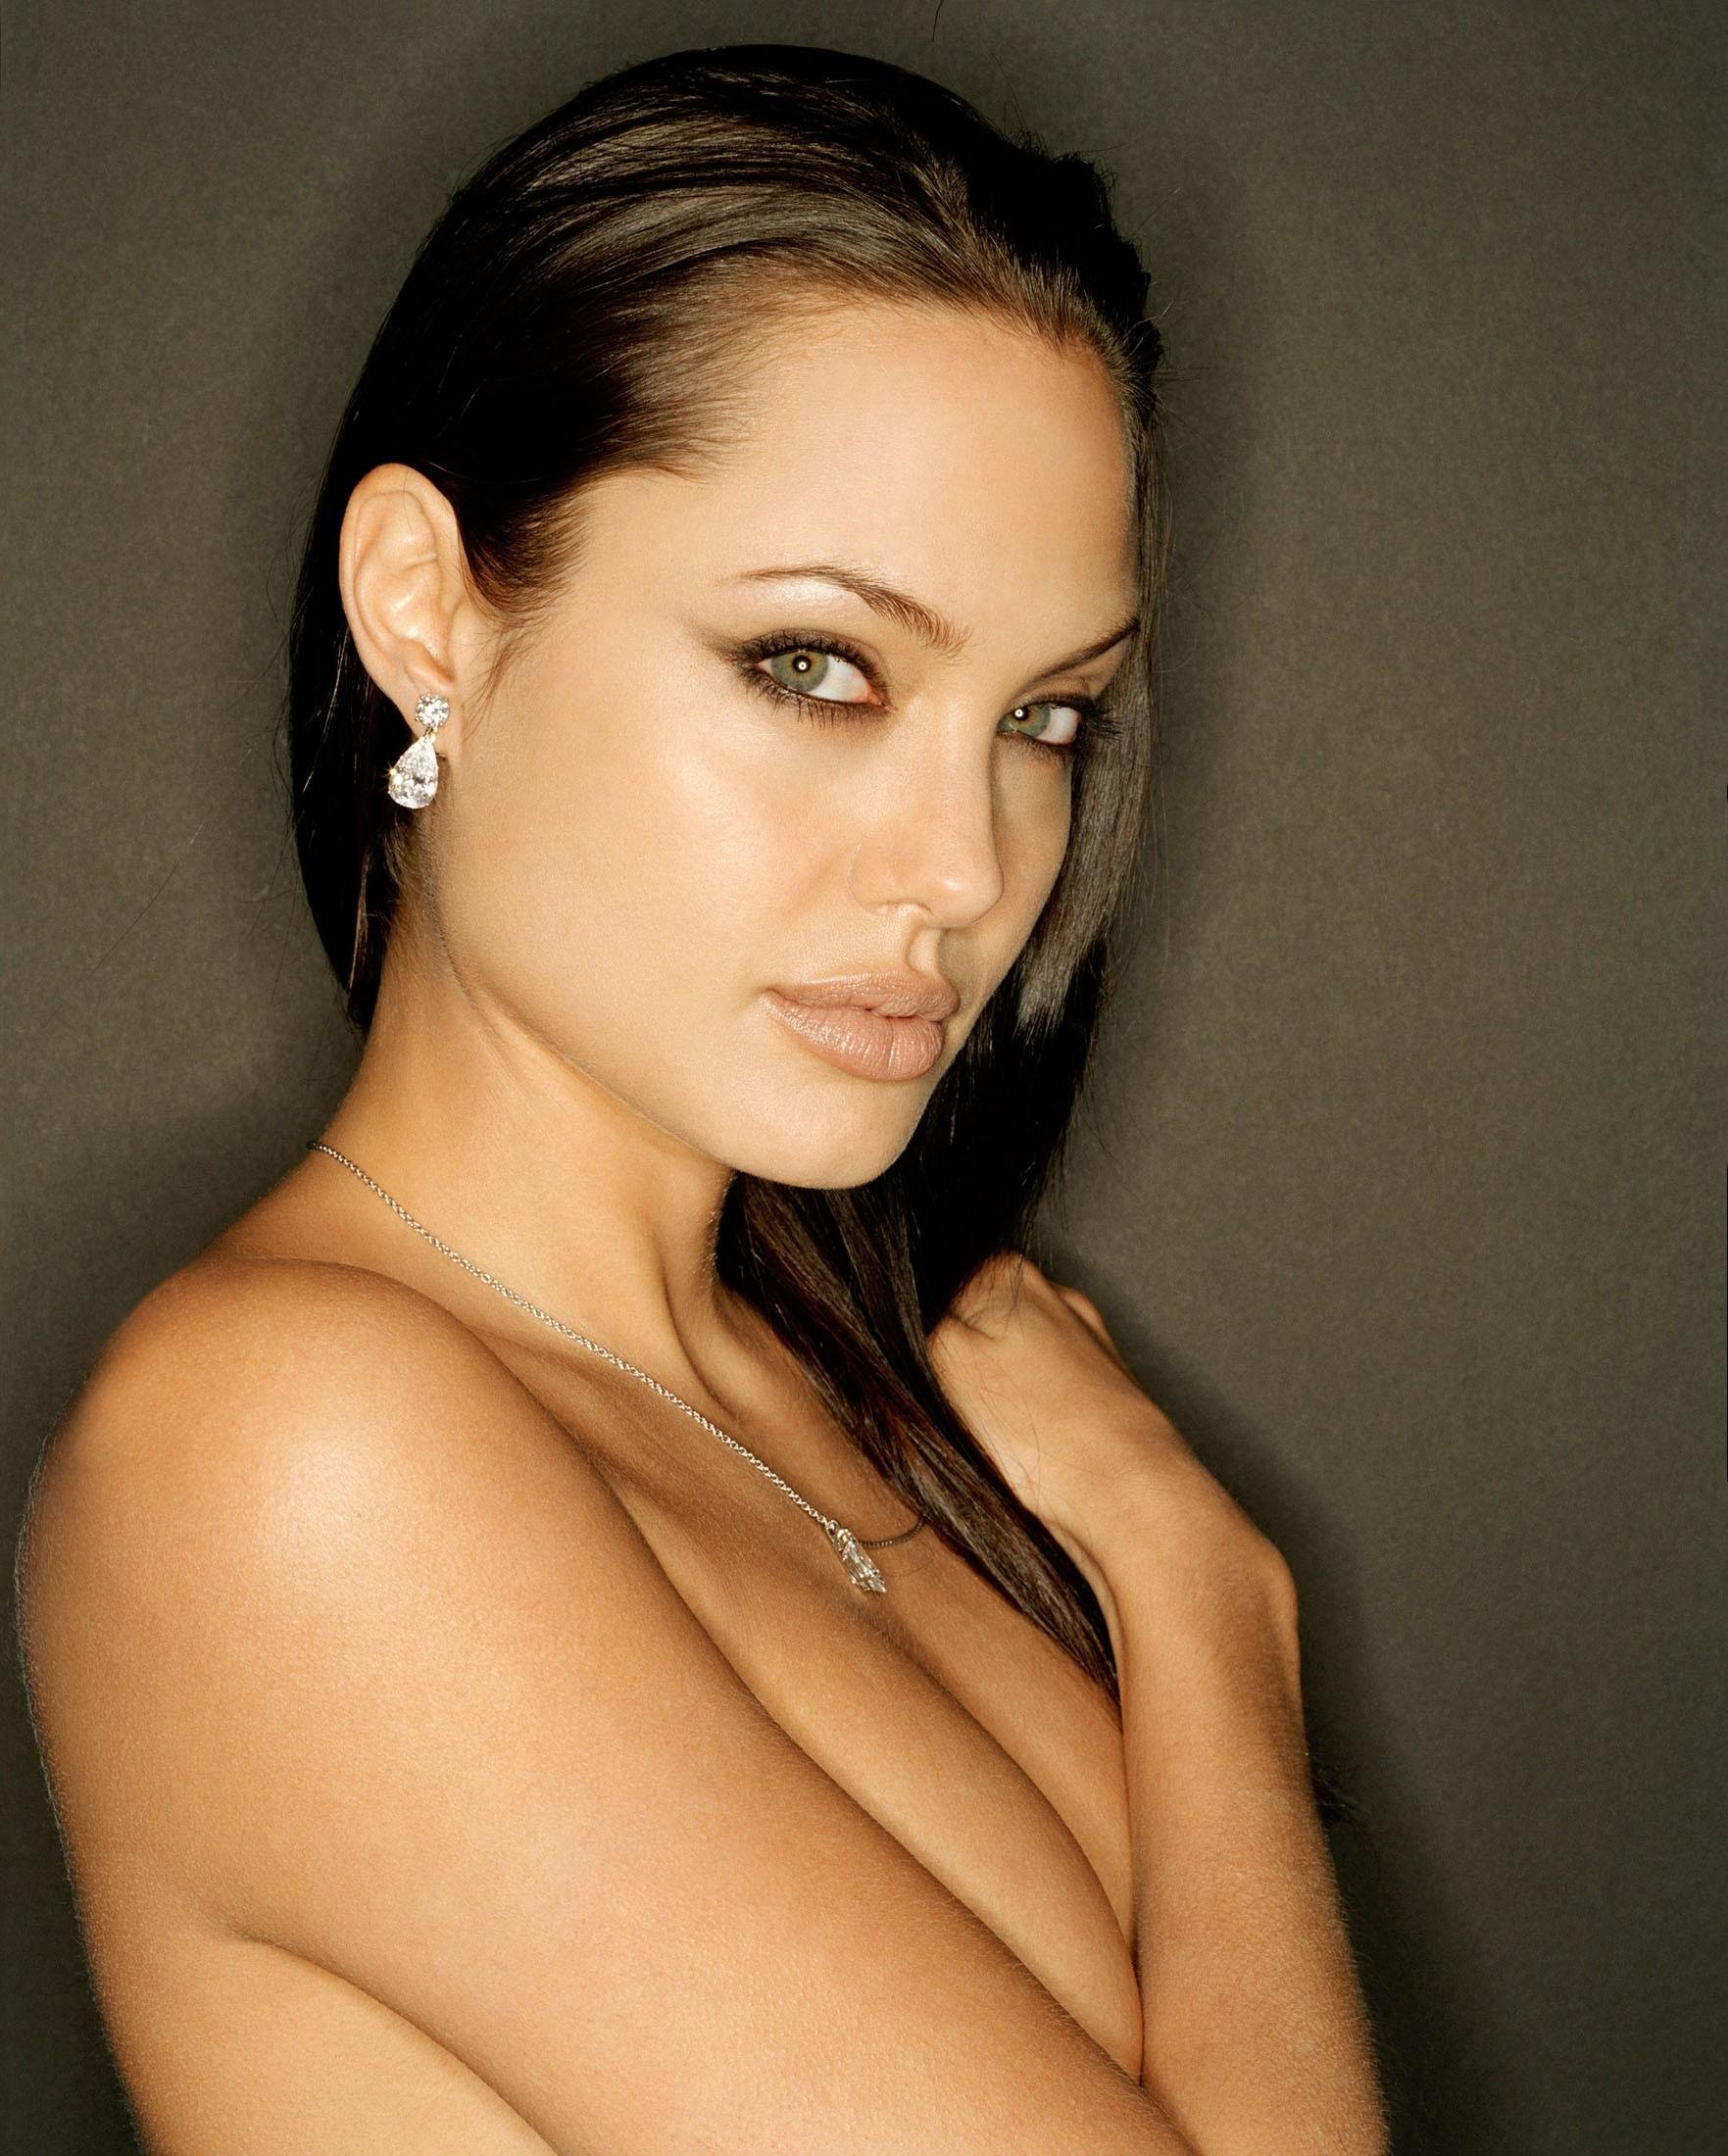 That angelina jolie sexy in lingerie with